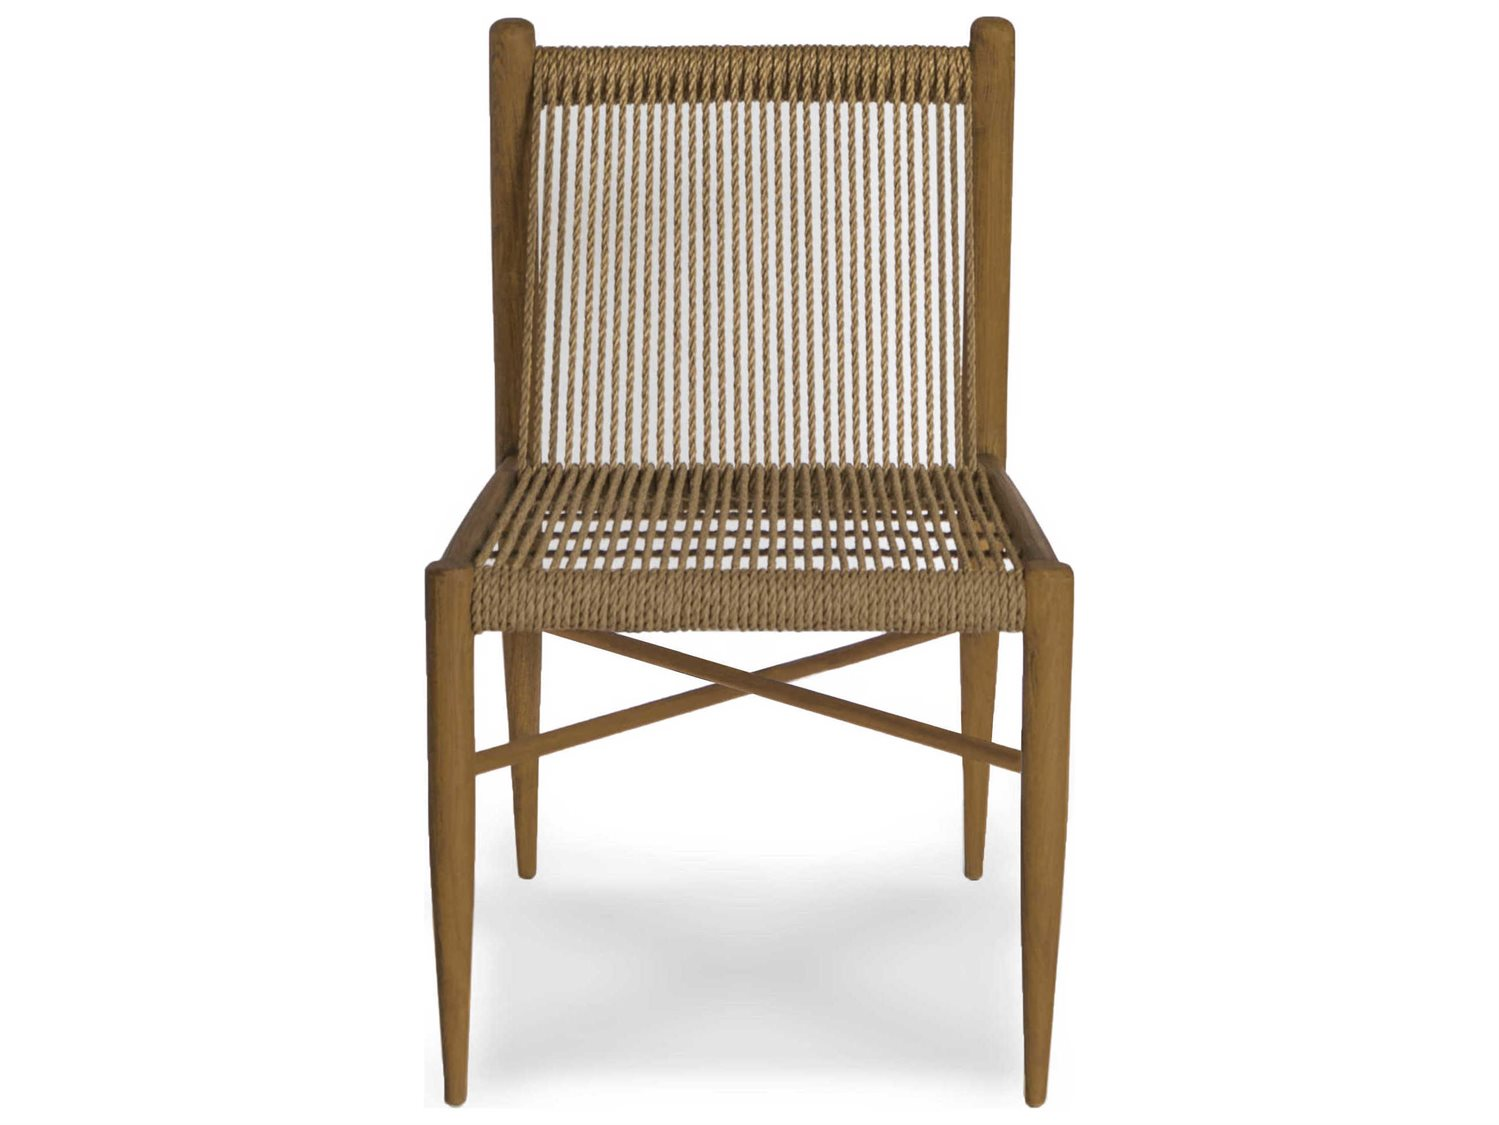 Amazing Brownstone Furniture Montauk Praline Accent Chair Andrewgaddart Wooden Chair Designs For Living Room Andrewgaddartcom